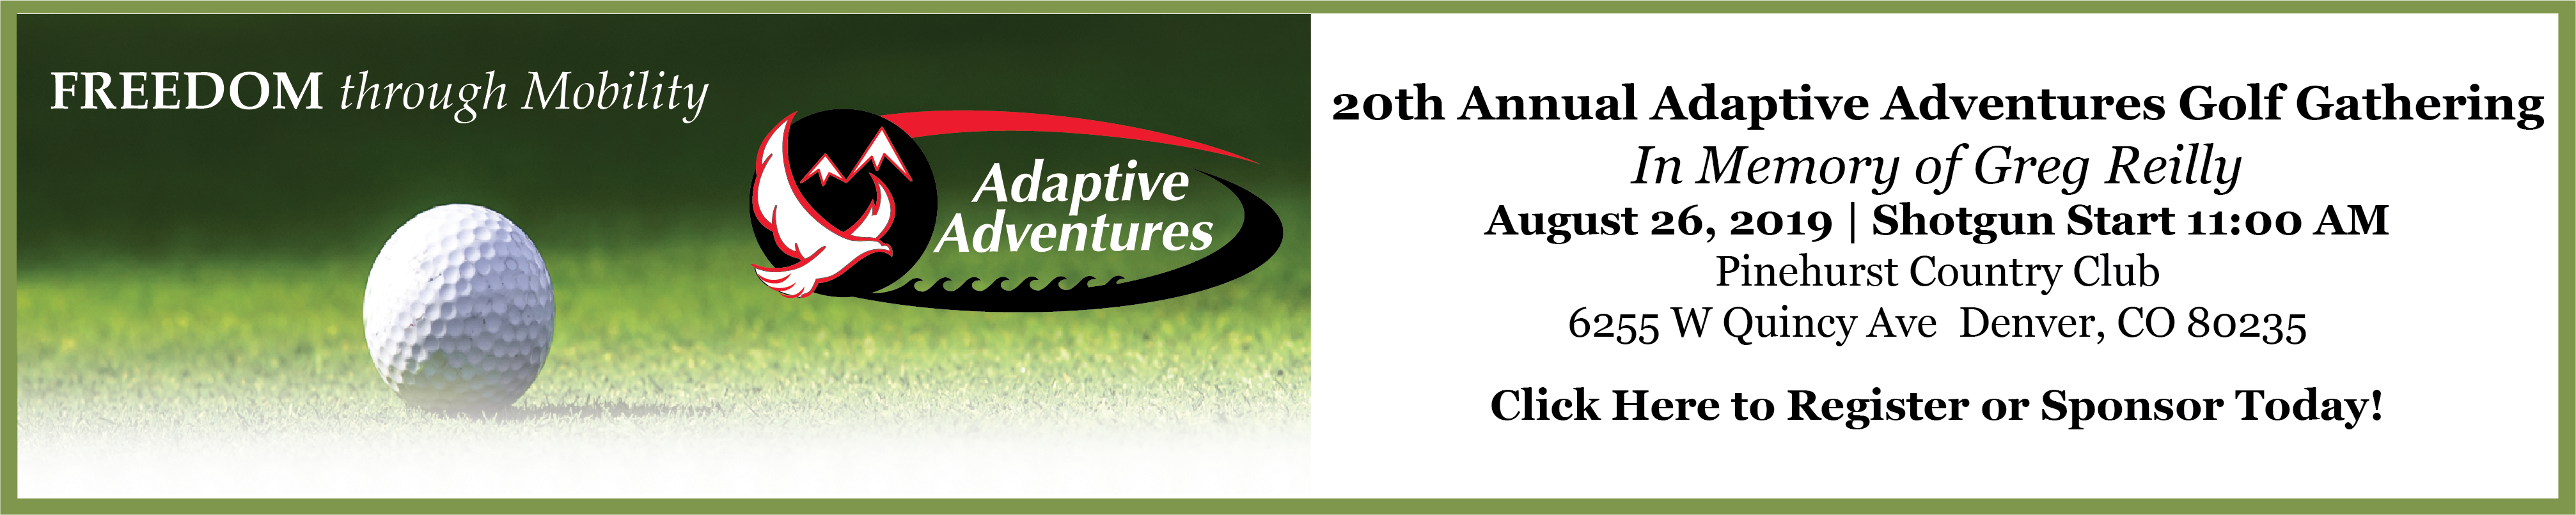 20th Annual Adaptive Adventures Golf Gathering